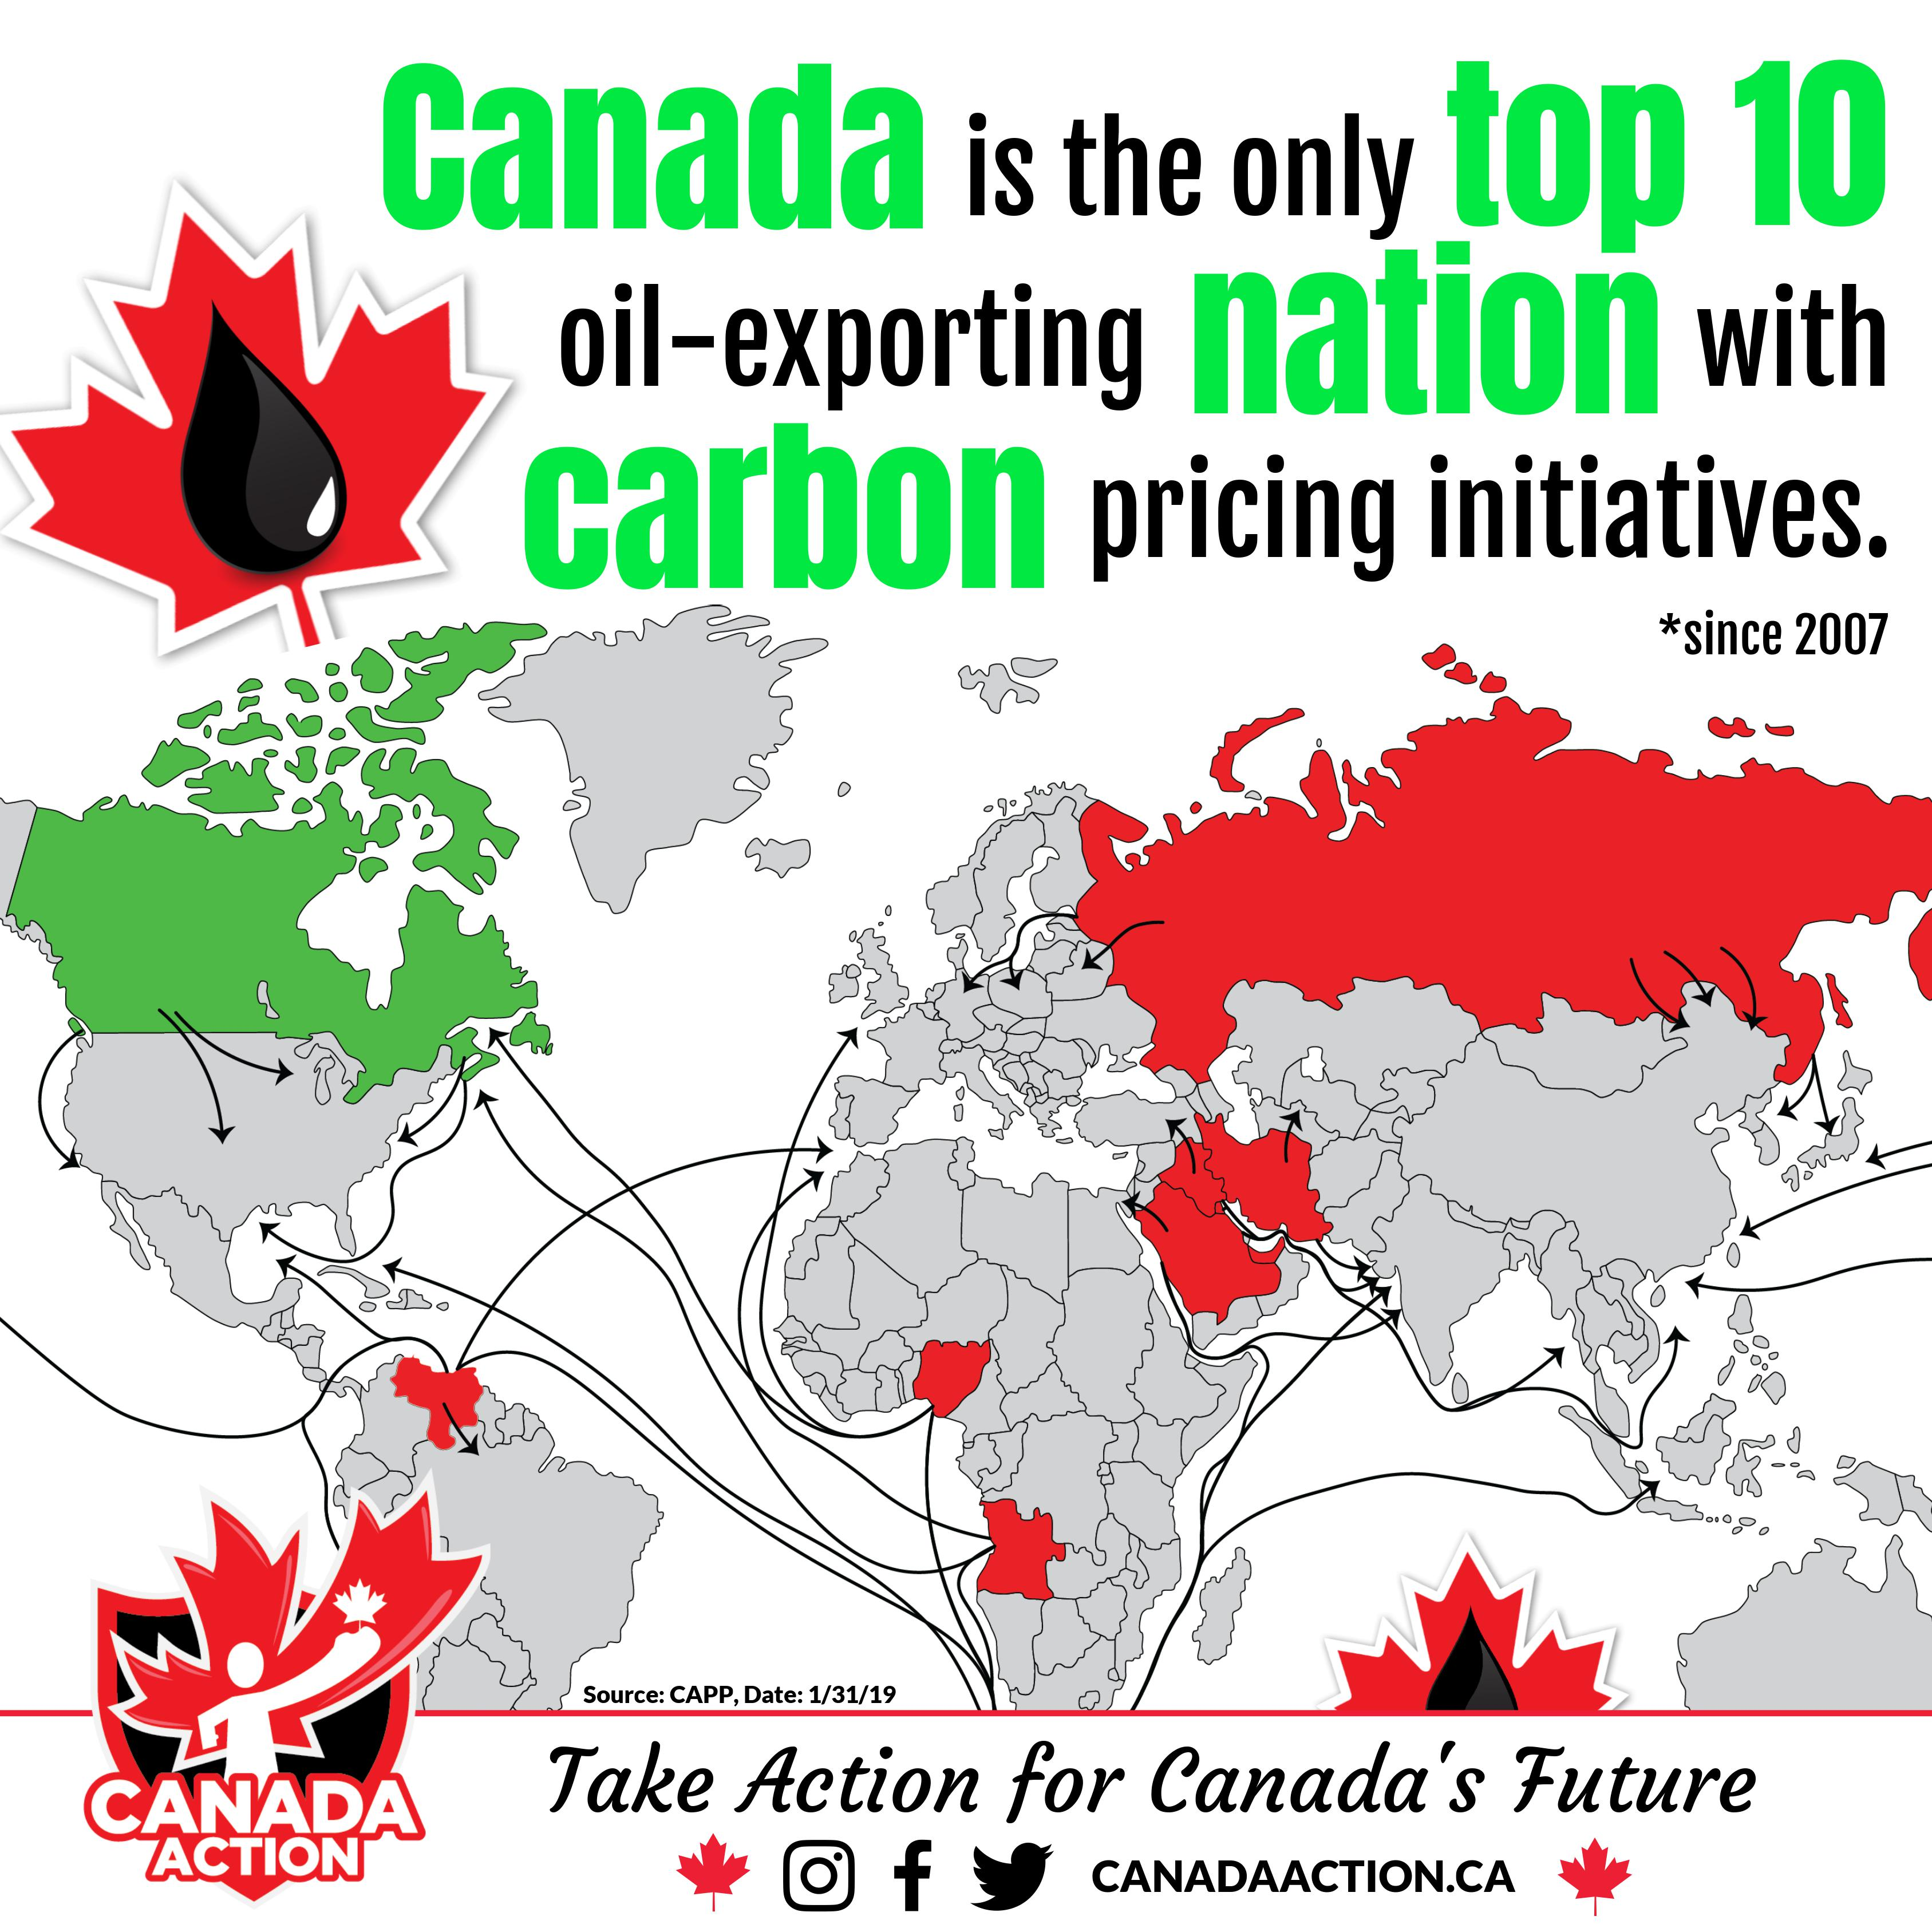 Canada Only Top 10 Oil Exporter With Carbon Pricing